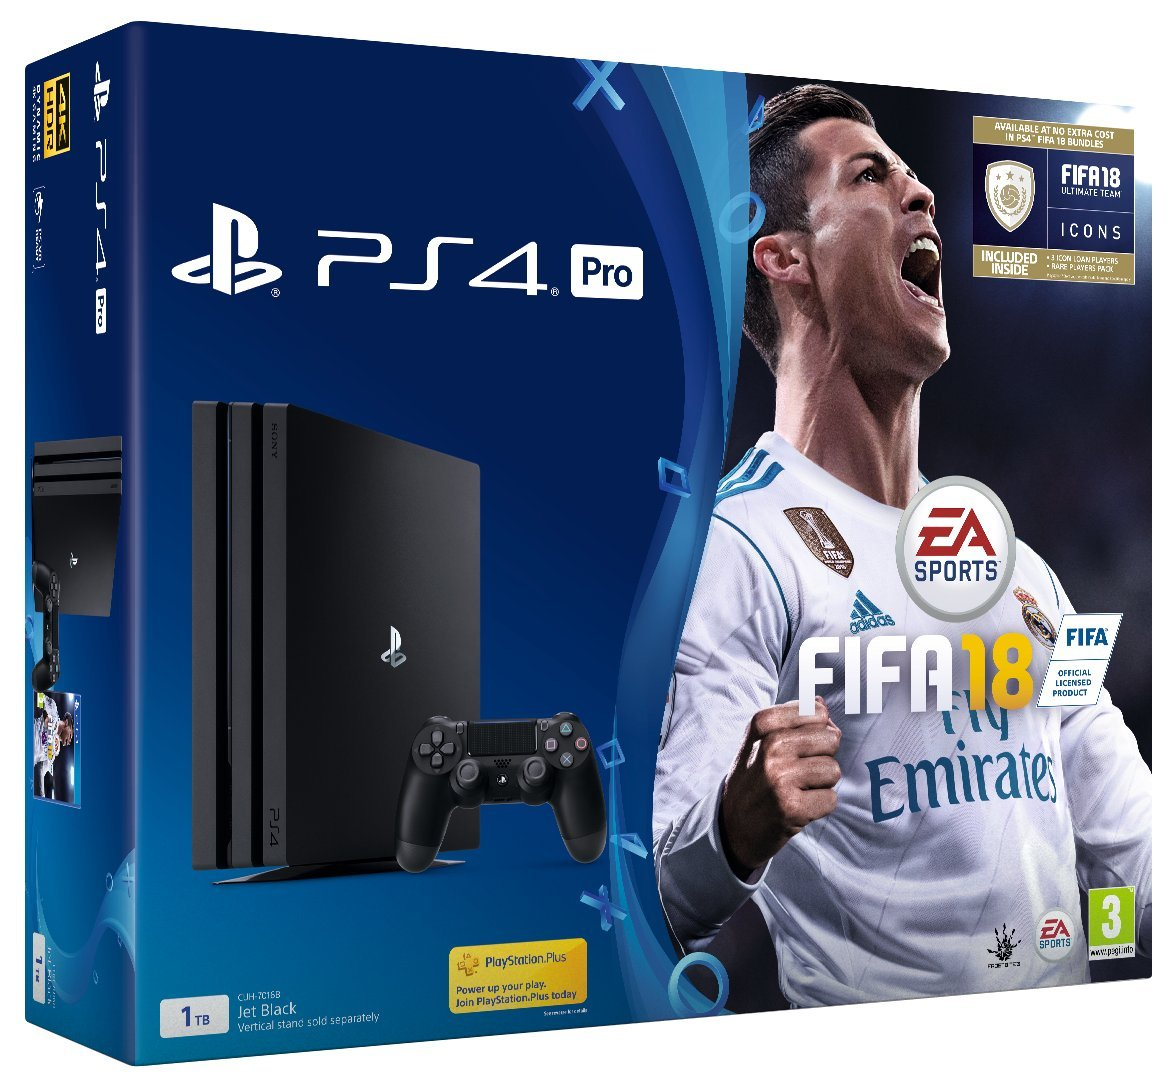 playstation ps4 pro 1tb with fifa 18 ultimate team icons. Black Bedroom Furniture Sets. Home Design Ideas